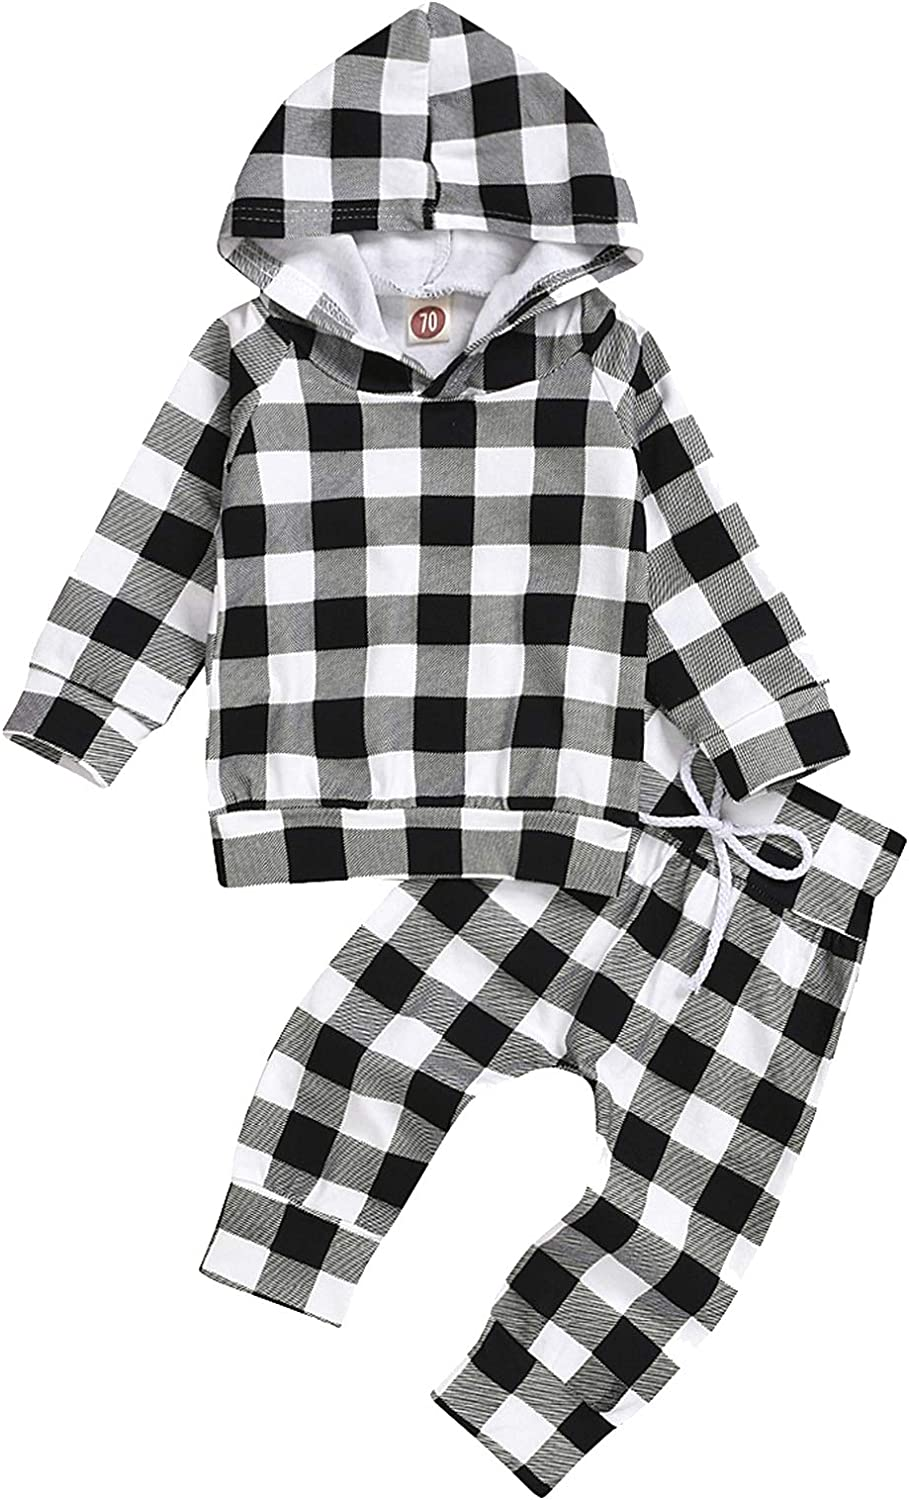 Baby Girls Boys Christmas Outfit Plaid Long Sleeve Tops + Pants Sets